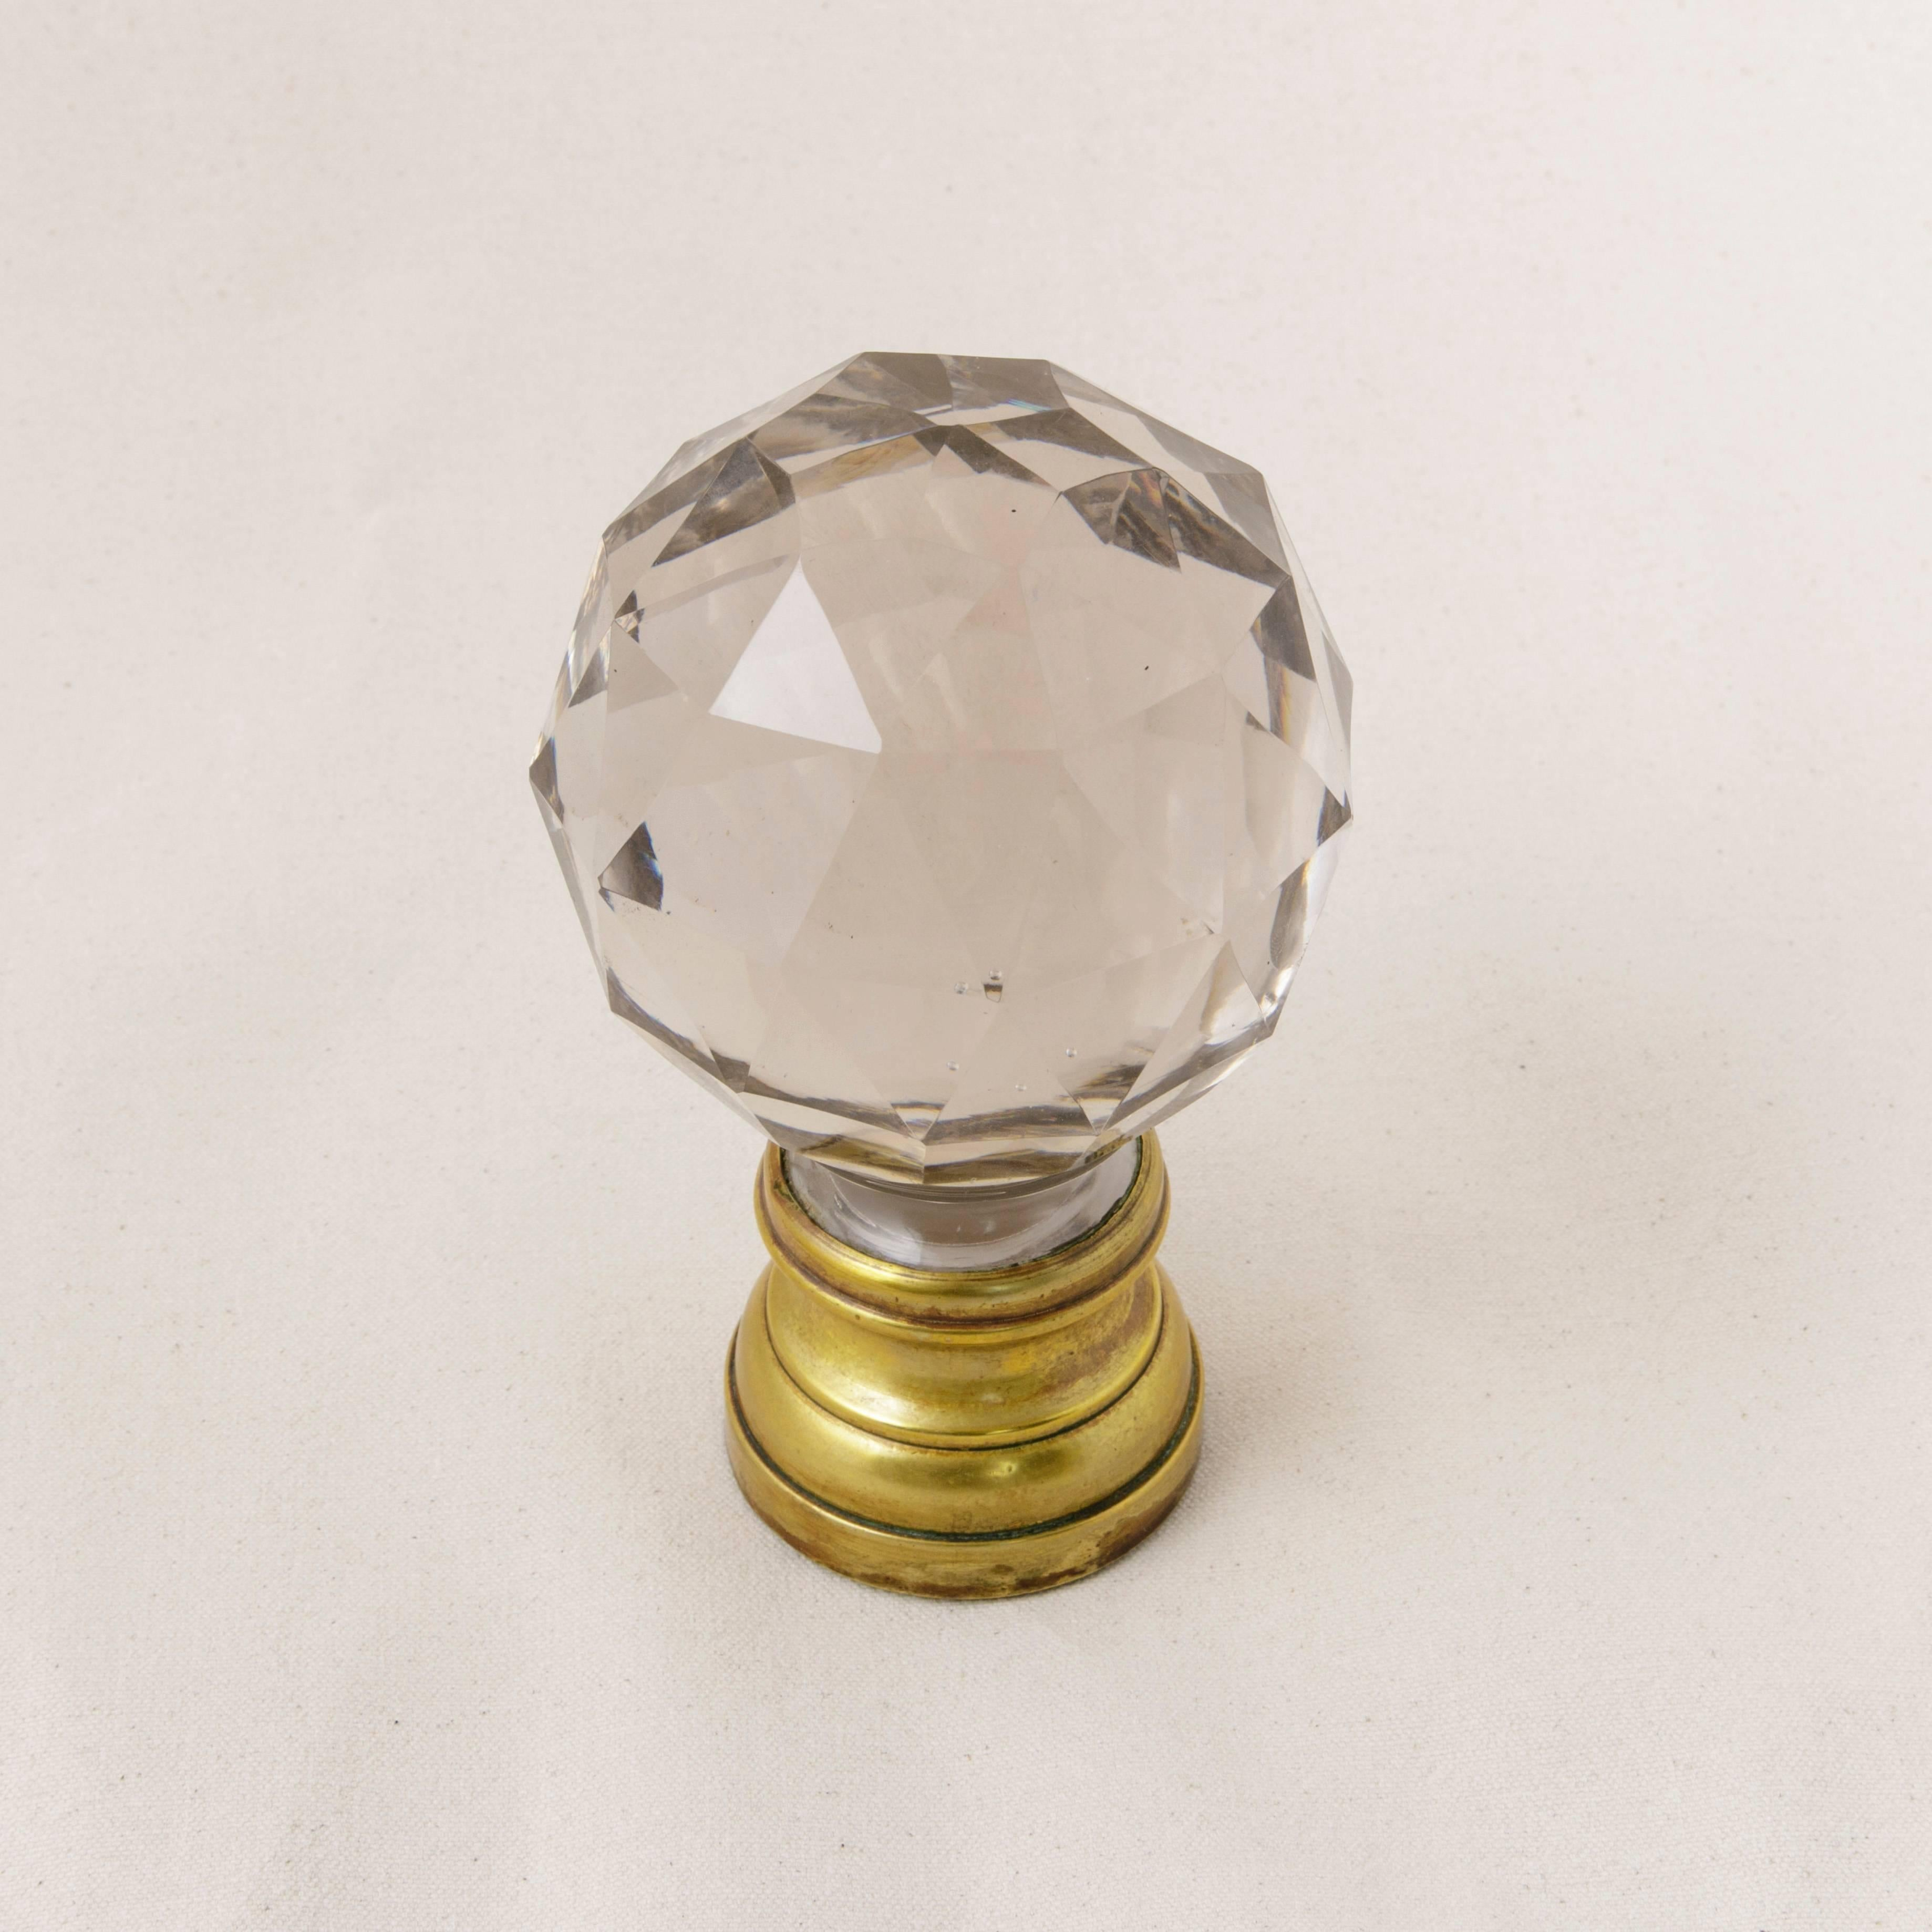 Antique French Baccarat Faceted Crystal Staircase Finial Ball At 1stdibs